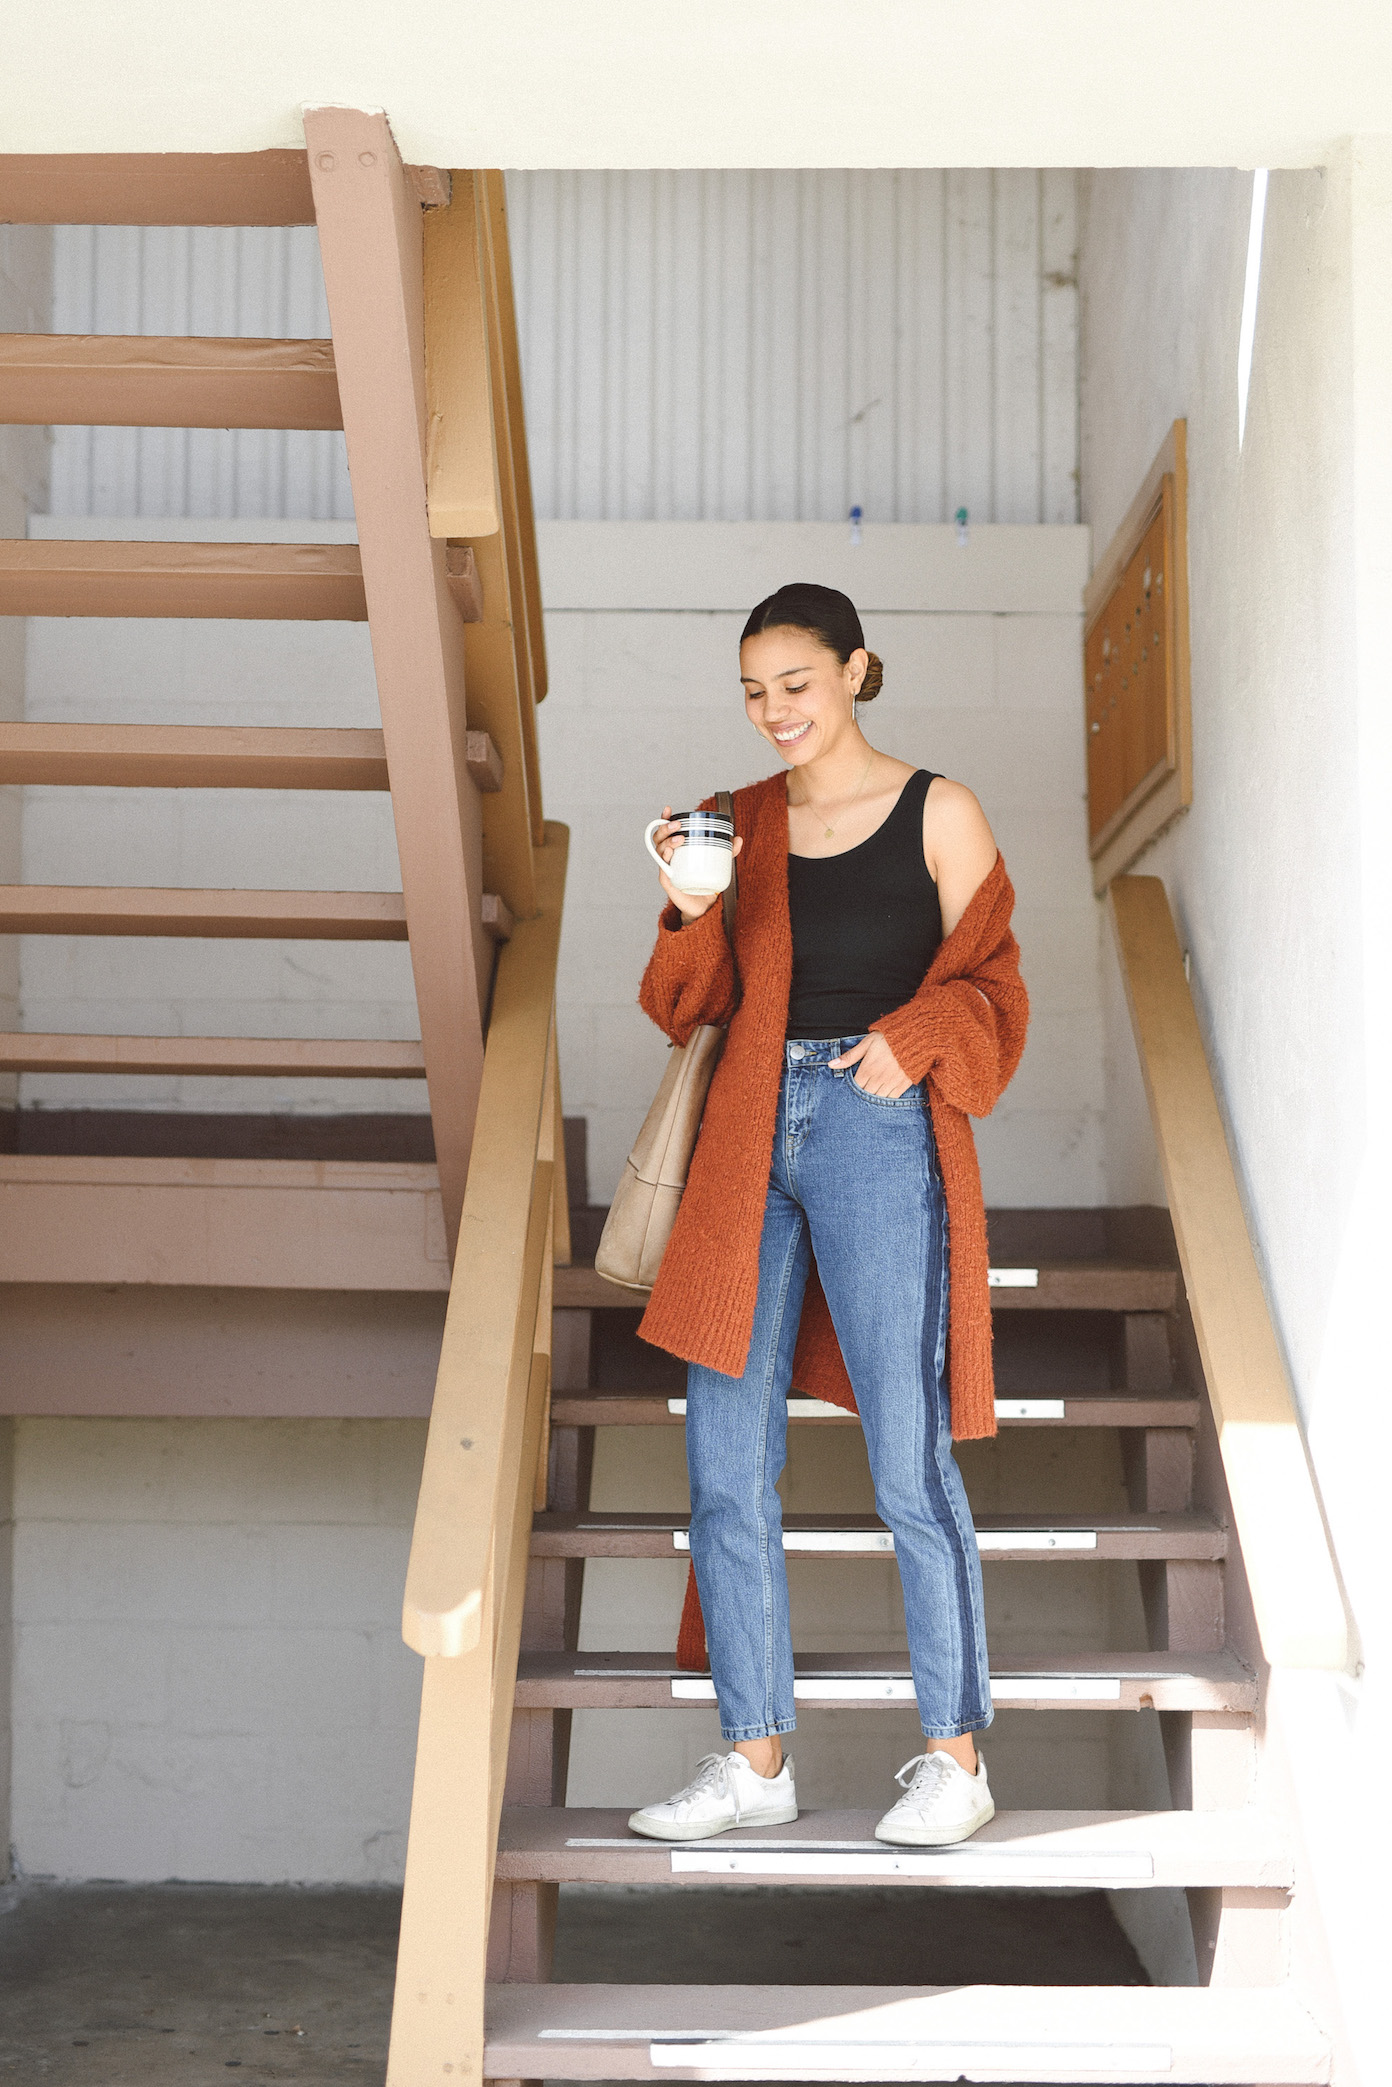 Cozy Paloma Wool sweater and Just Female jeans // A Week Of Outfits With Jazmine Brown on The Good Trade